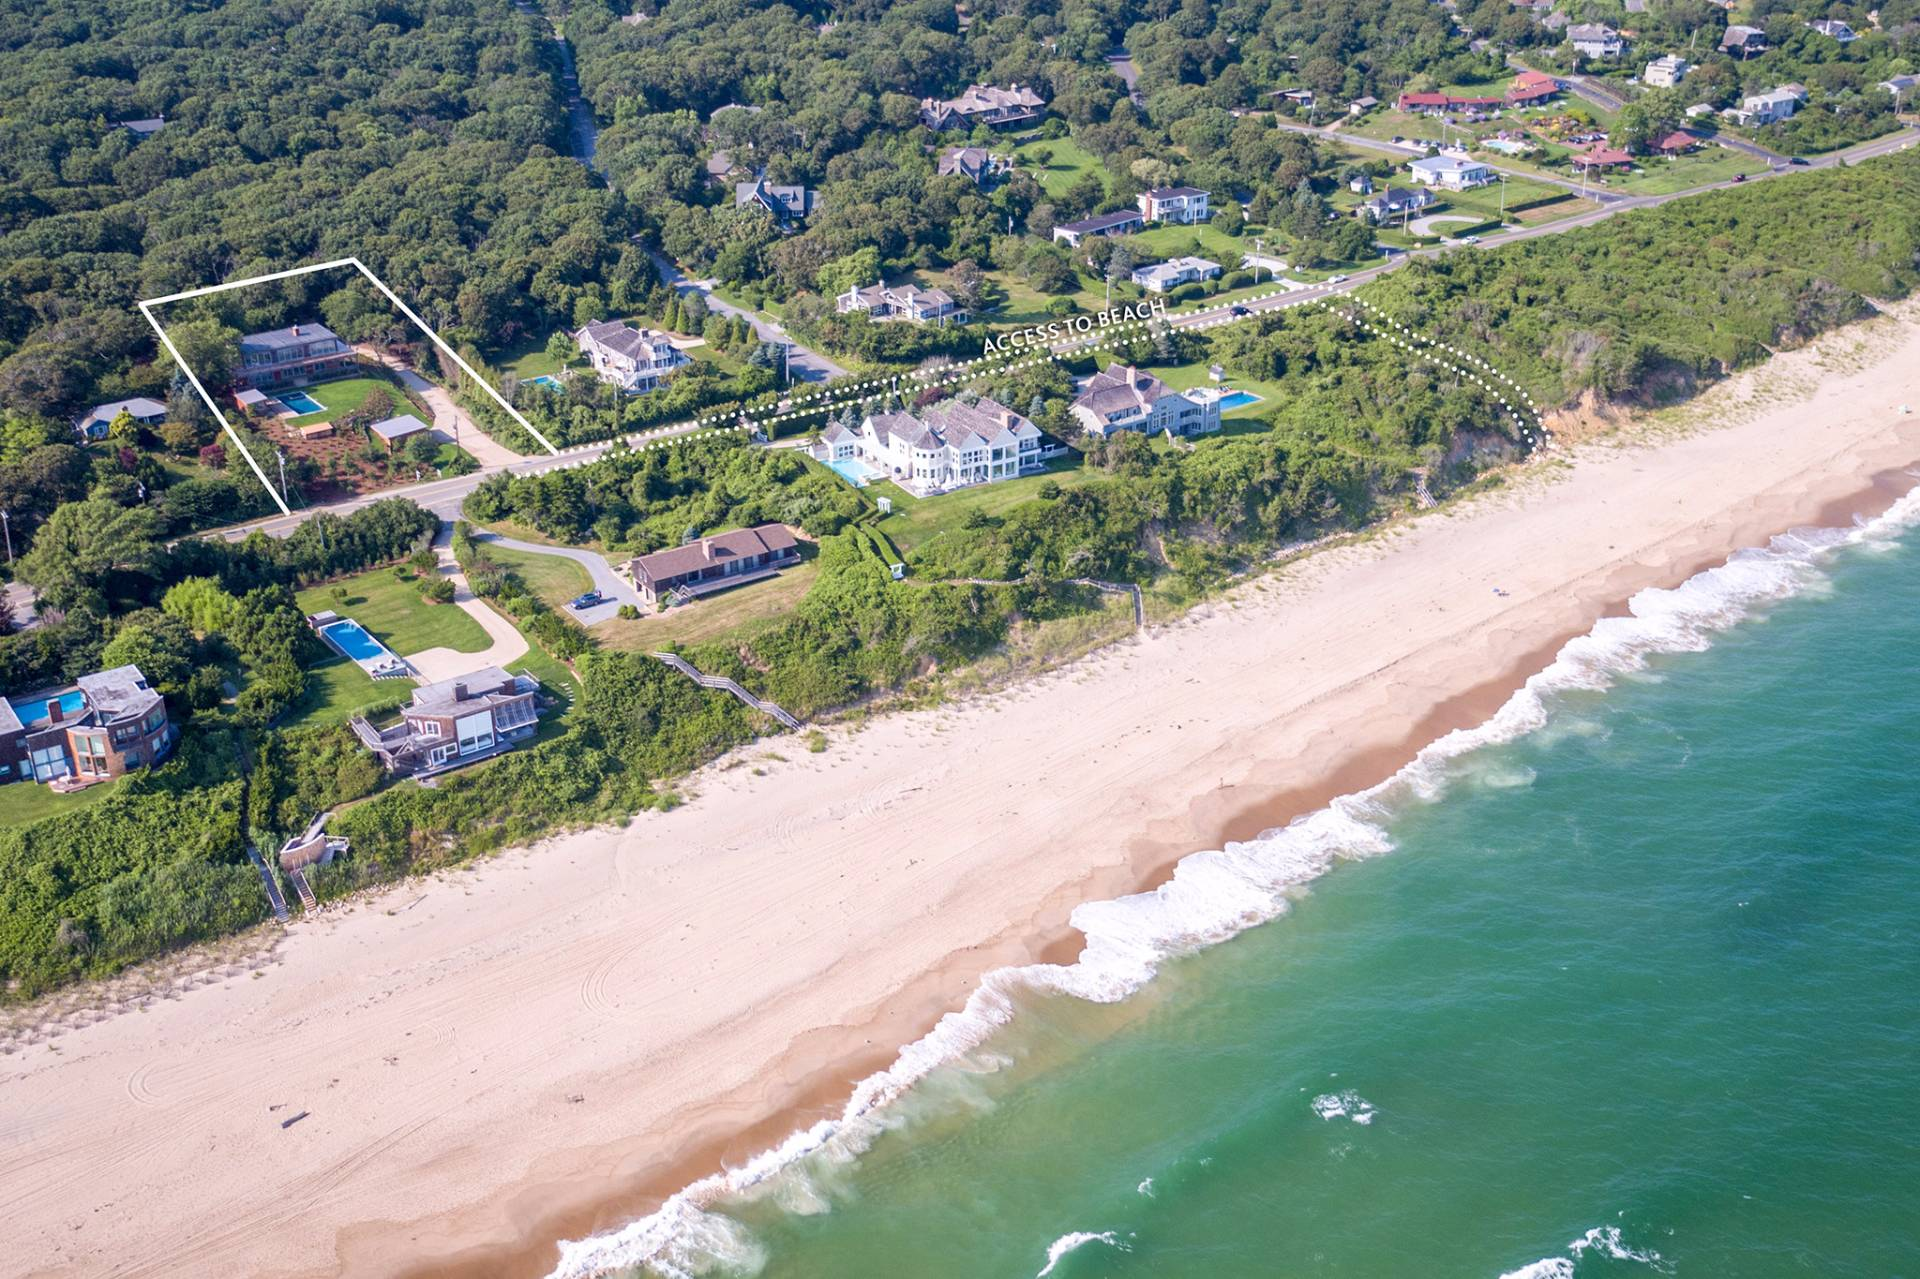 Single Family Home for Sale at New Modern With Incredible Ocean Views 381 Old Montauk Highway, Montauk, New York